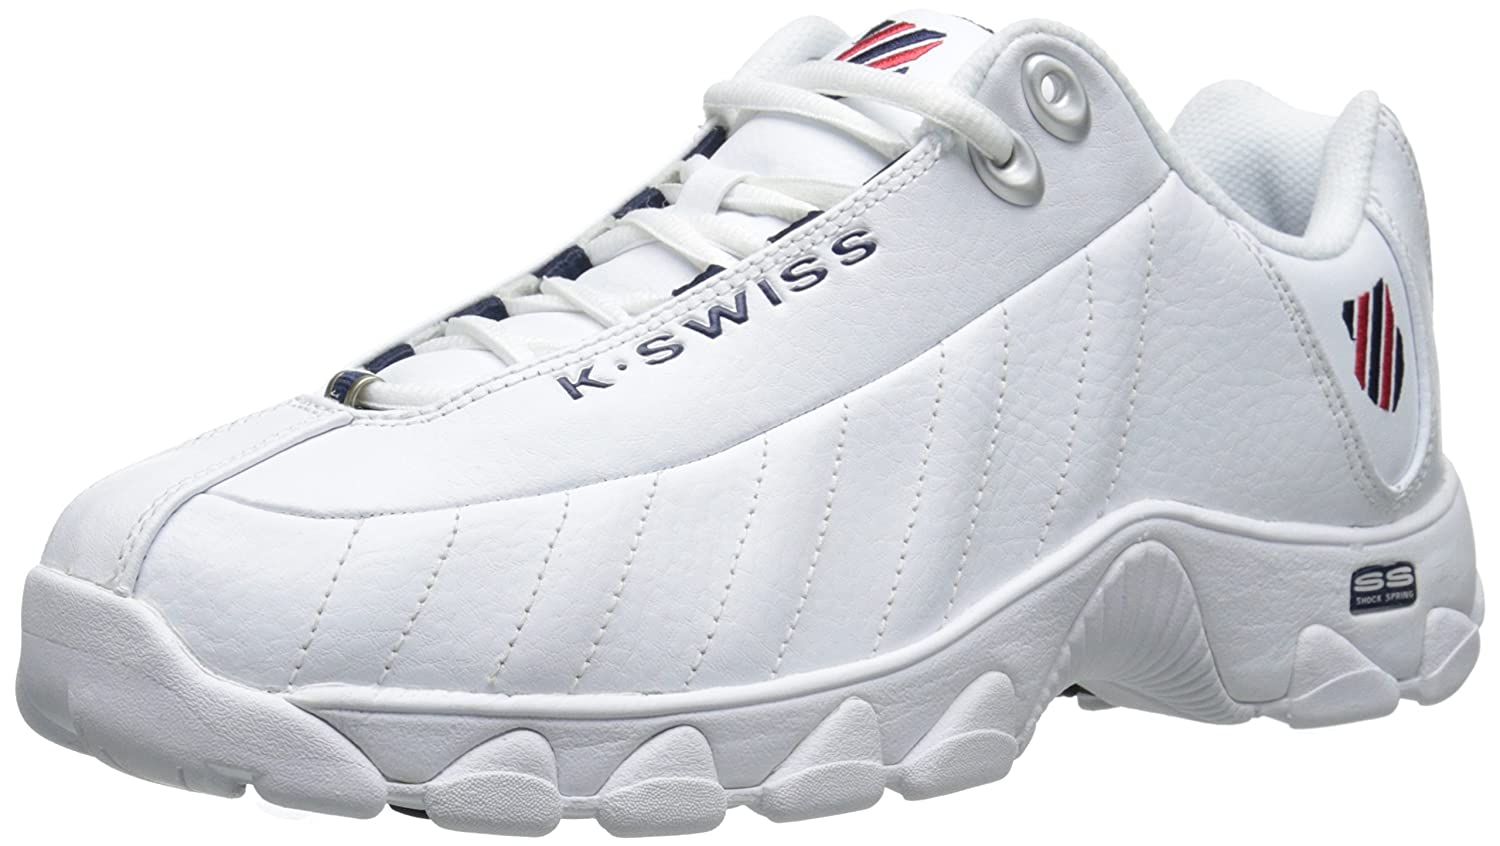 K-Swiss Mens ST329 Fashion Sneakers B00RBA87E8 10 D(M) US|White / Navy / Red White / Navy / Red 10 D(M) US